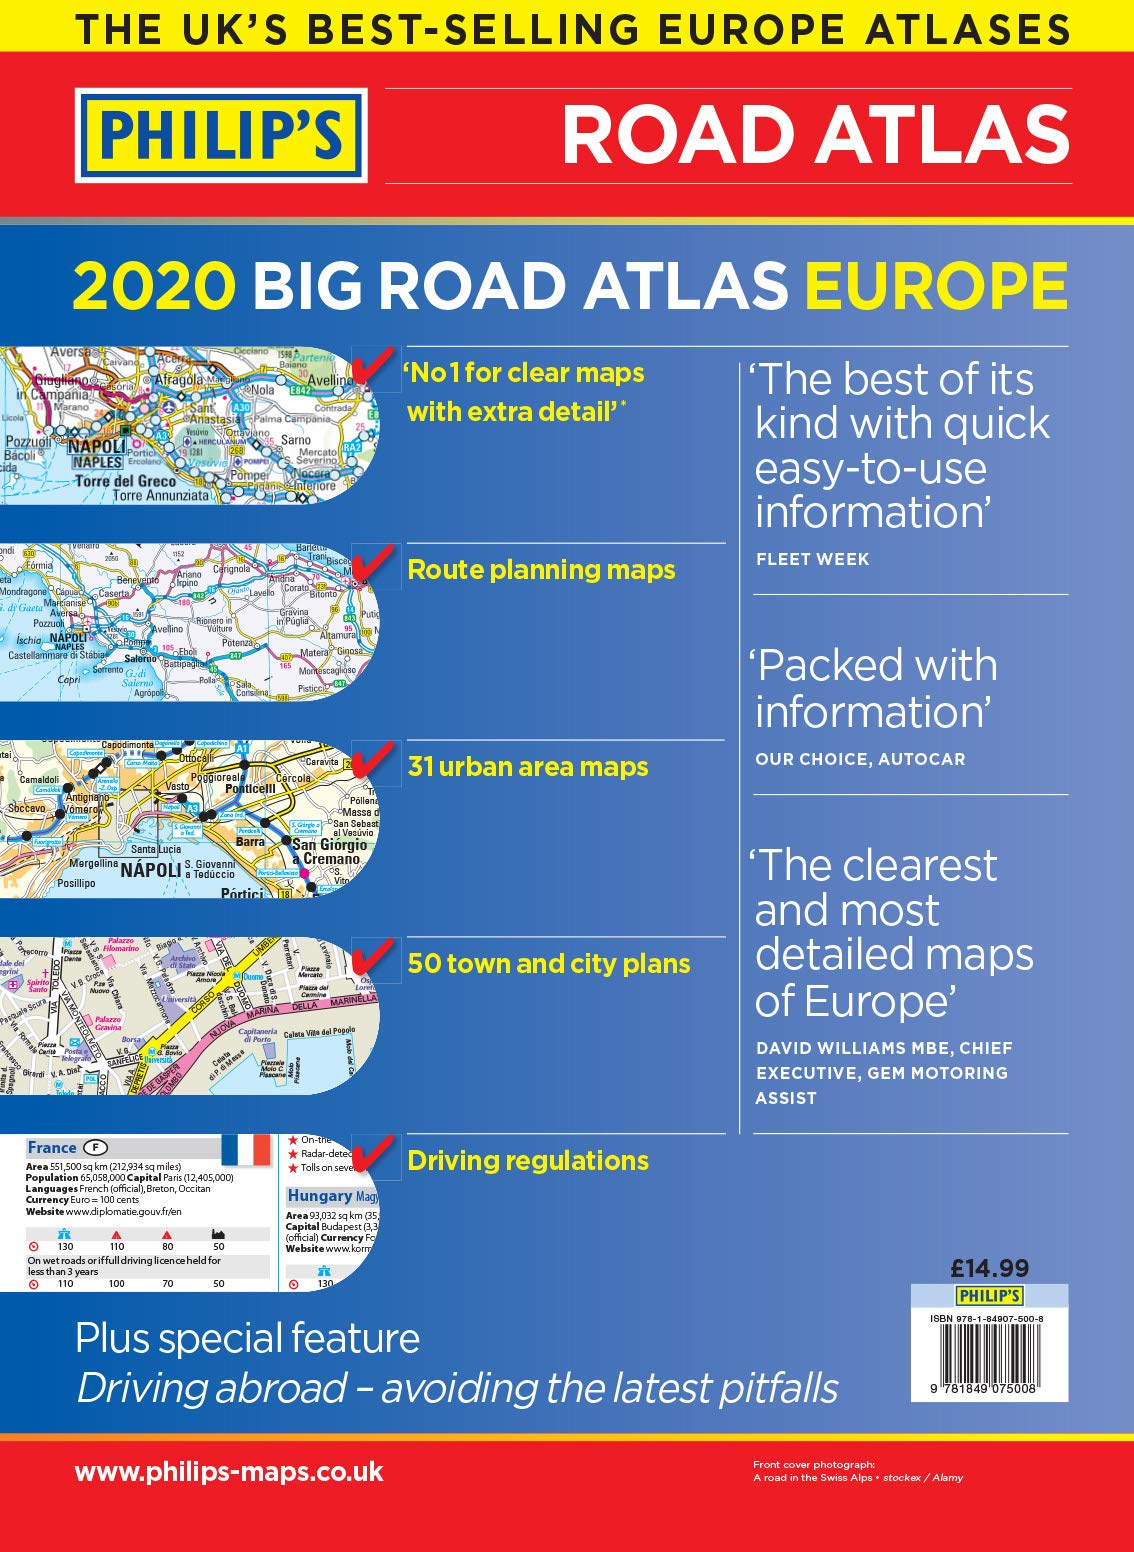 2020 Philip's Big Road Atlas Europe: (A3 Spiral binding) (Philip's Road Atlases) 8